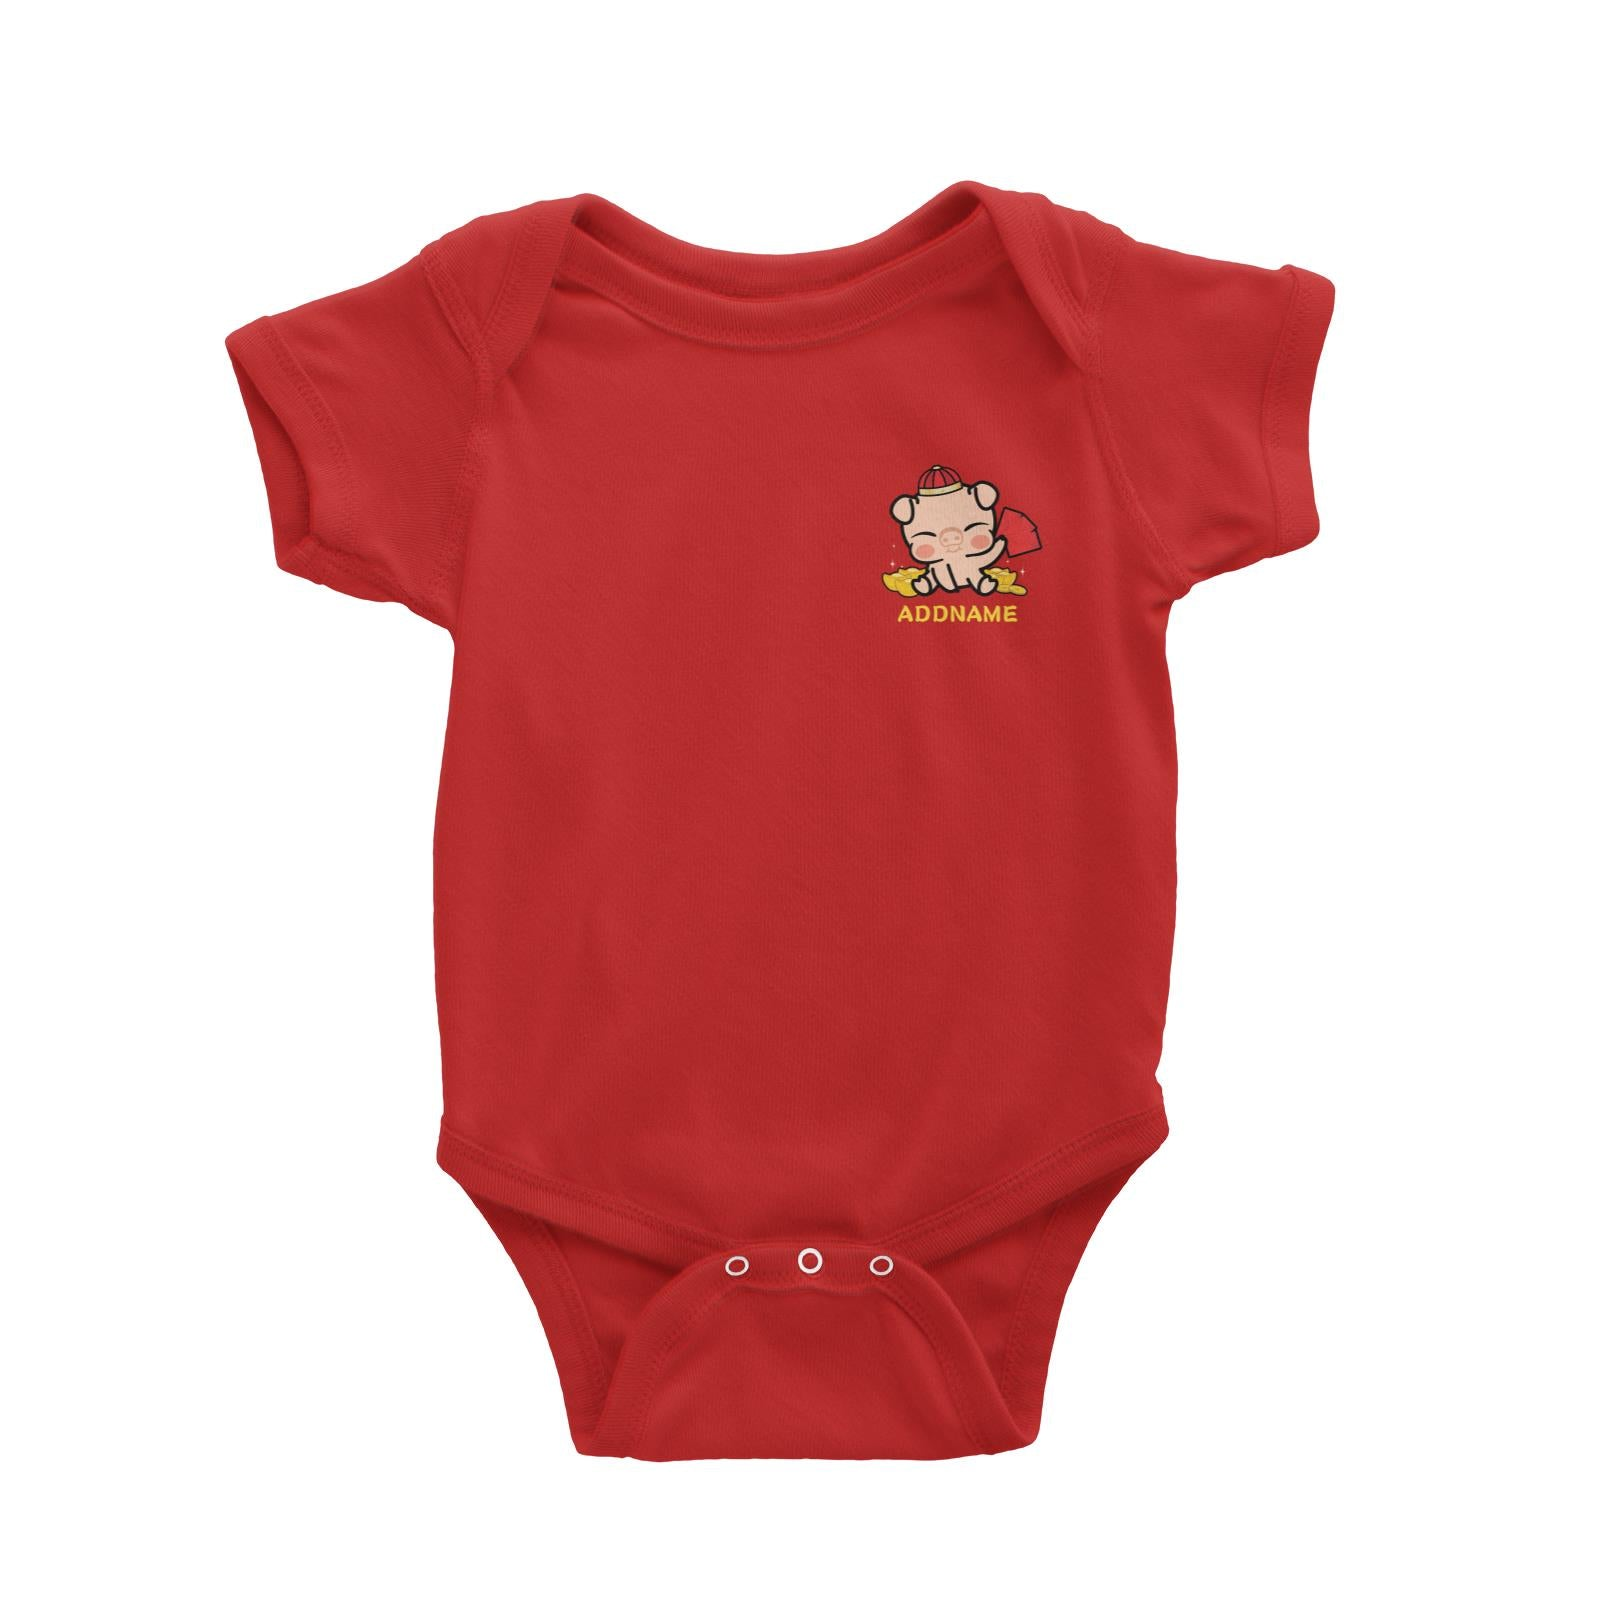 Properity Pig Baby Full Body with Red Packets And Gold Pocket Design Baby Romper